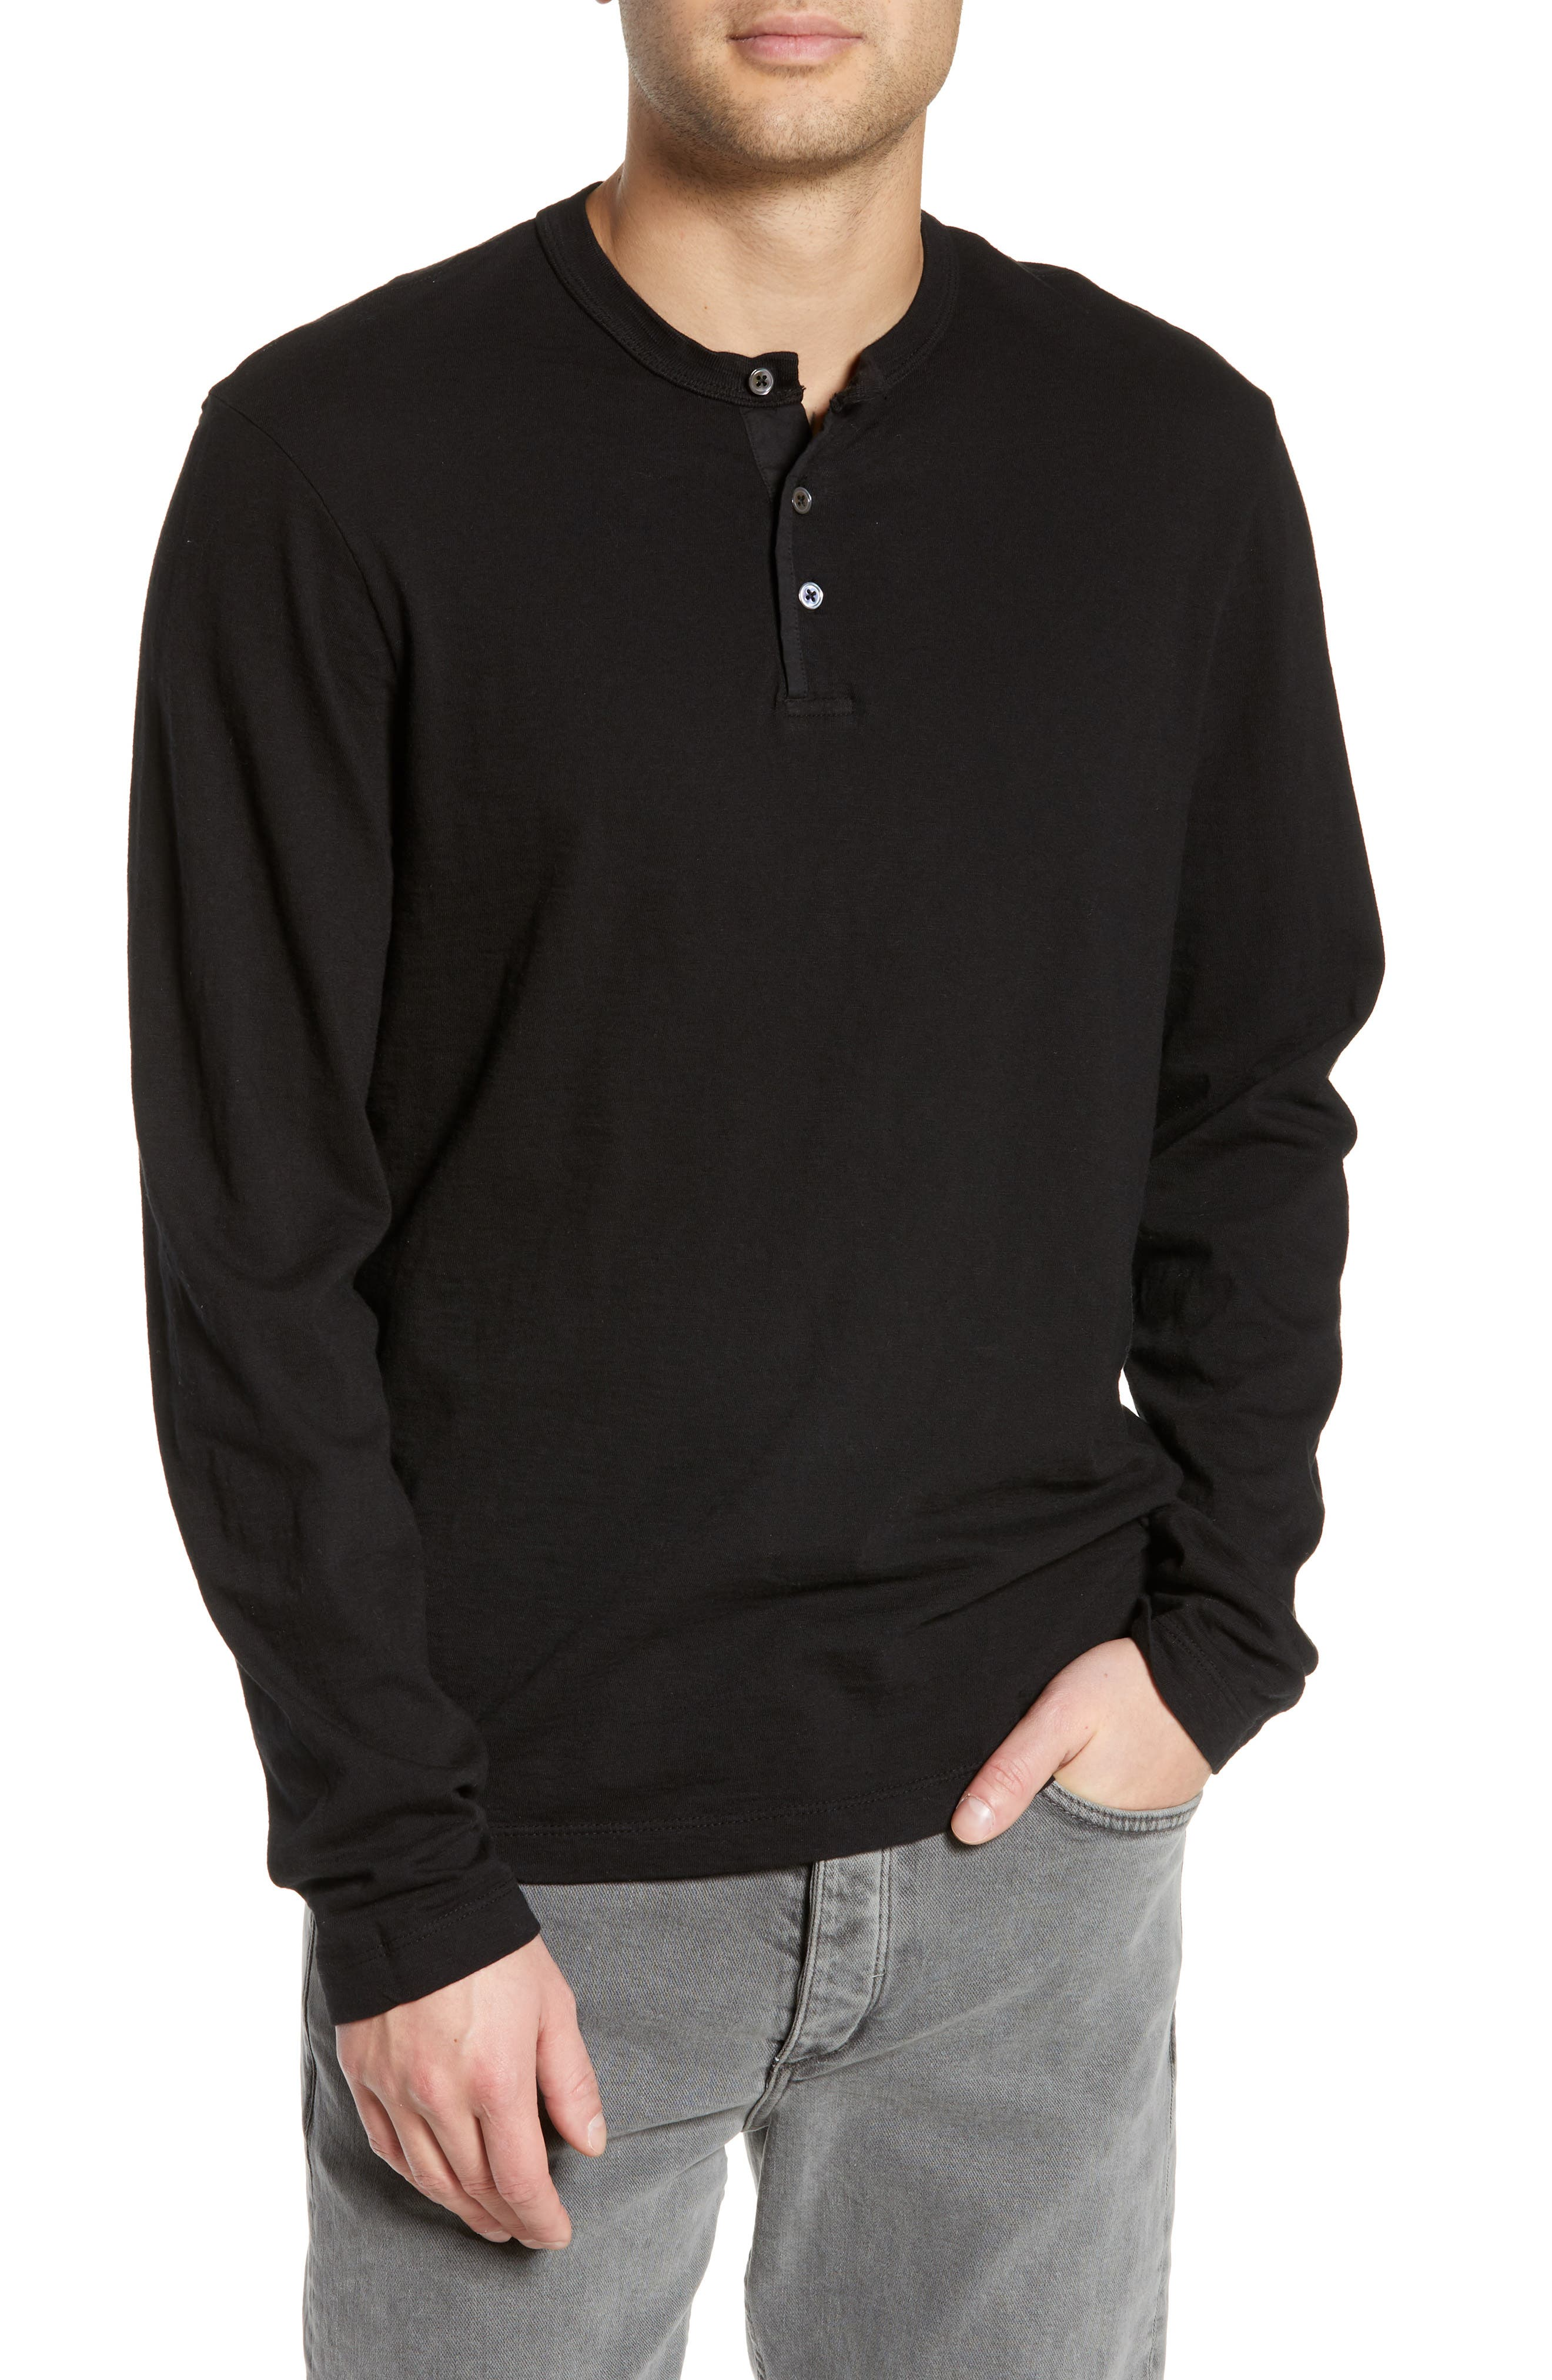 JAMES PERSE Slim Fit Long Sleeve Henley, Main, color, 001